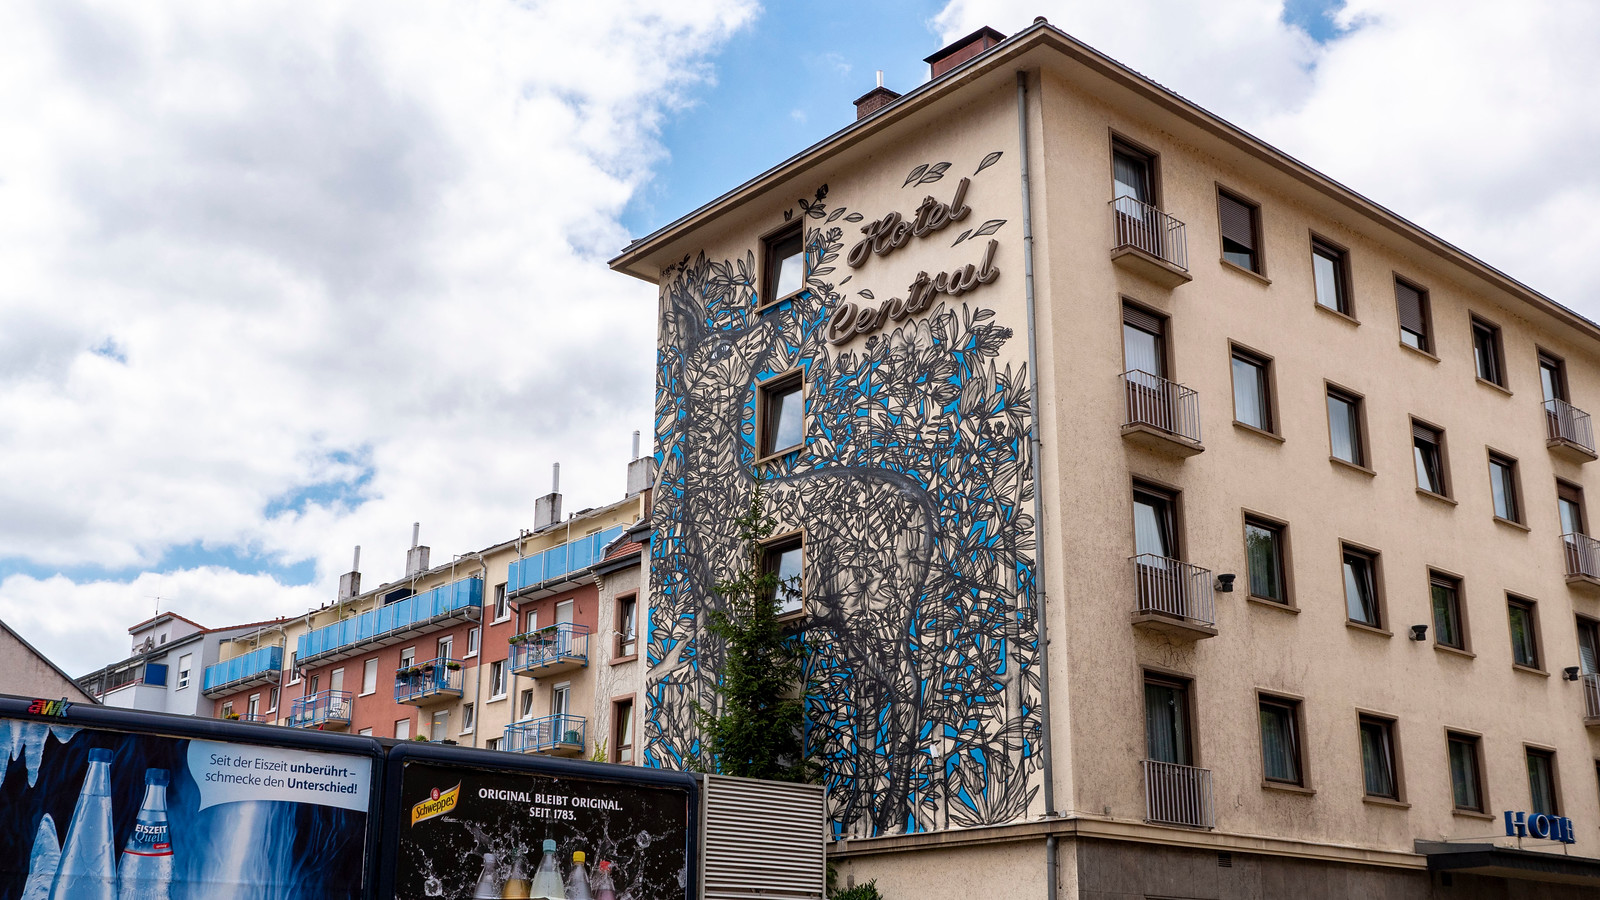 Spectacular Things to Do in Heidelberg Germany - Street art, public art, murals